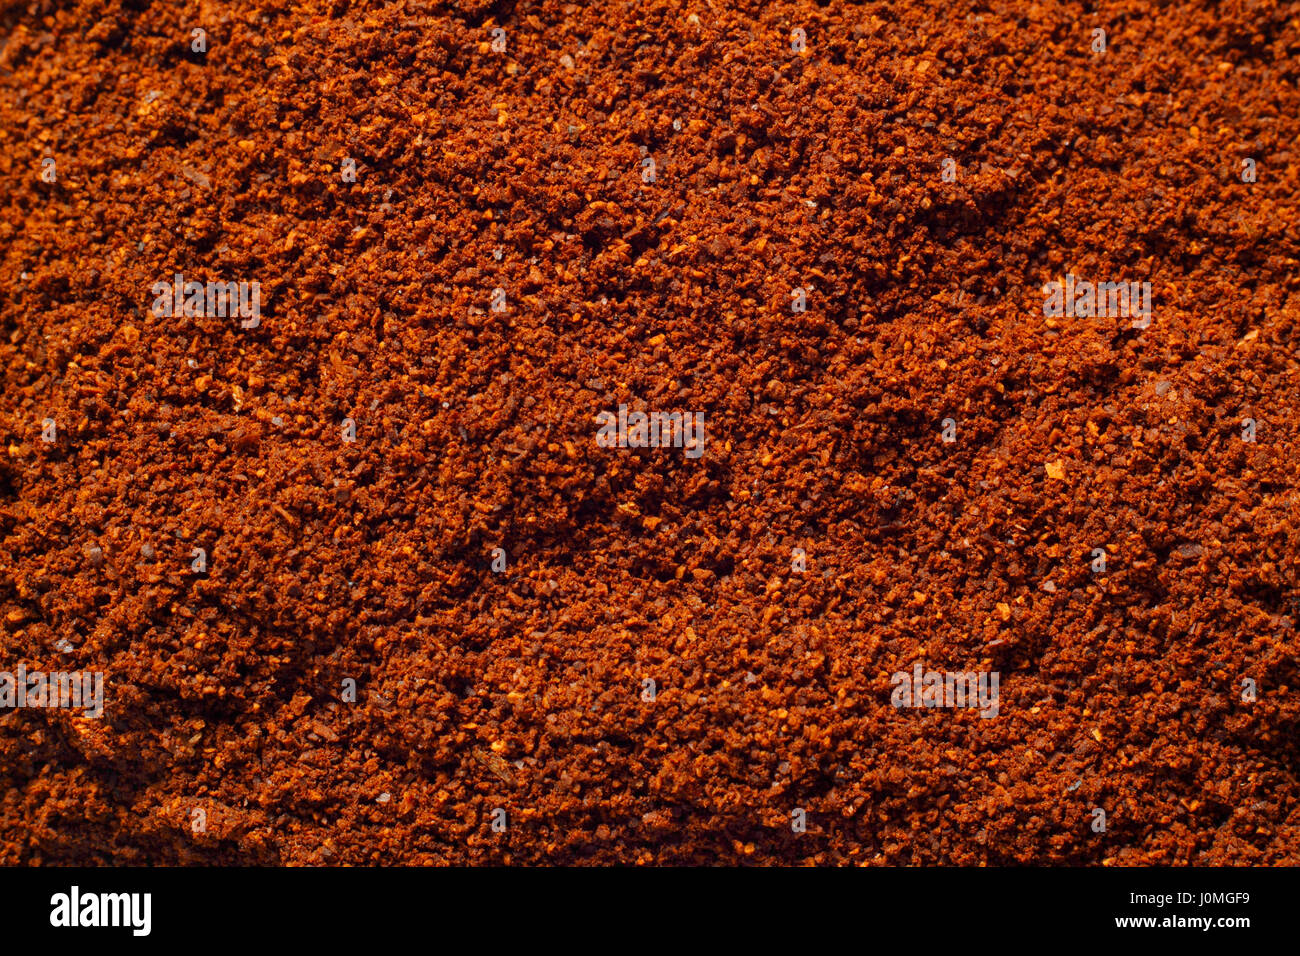 Ground coffee texture close-up. Full frame, top view. - Stock Image